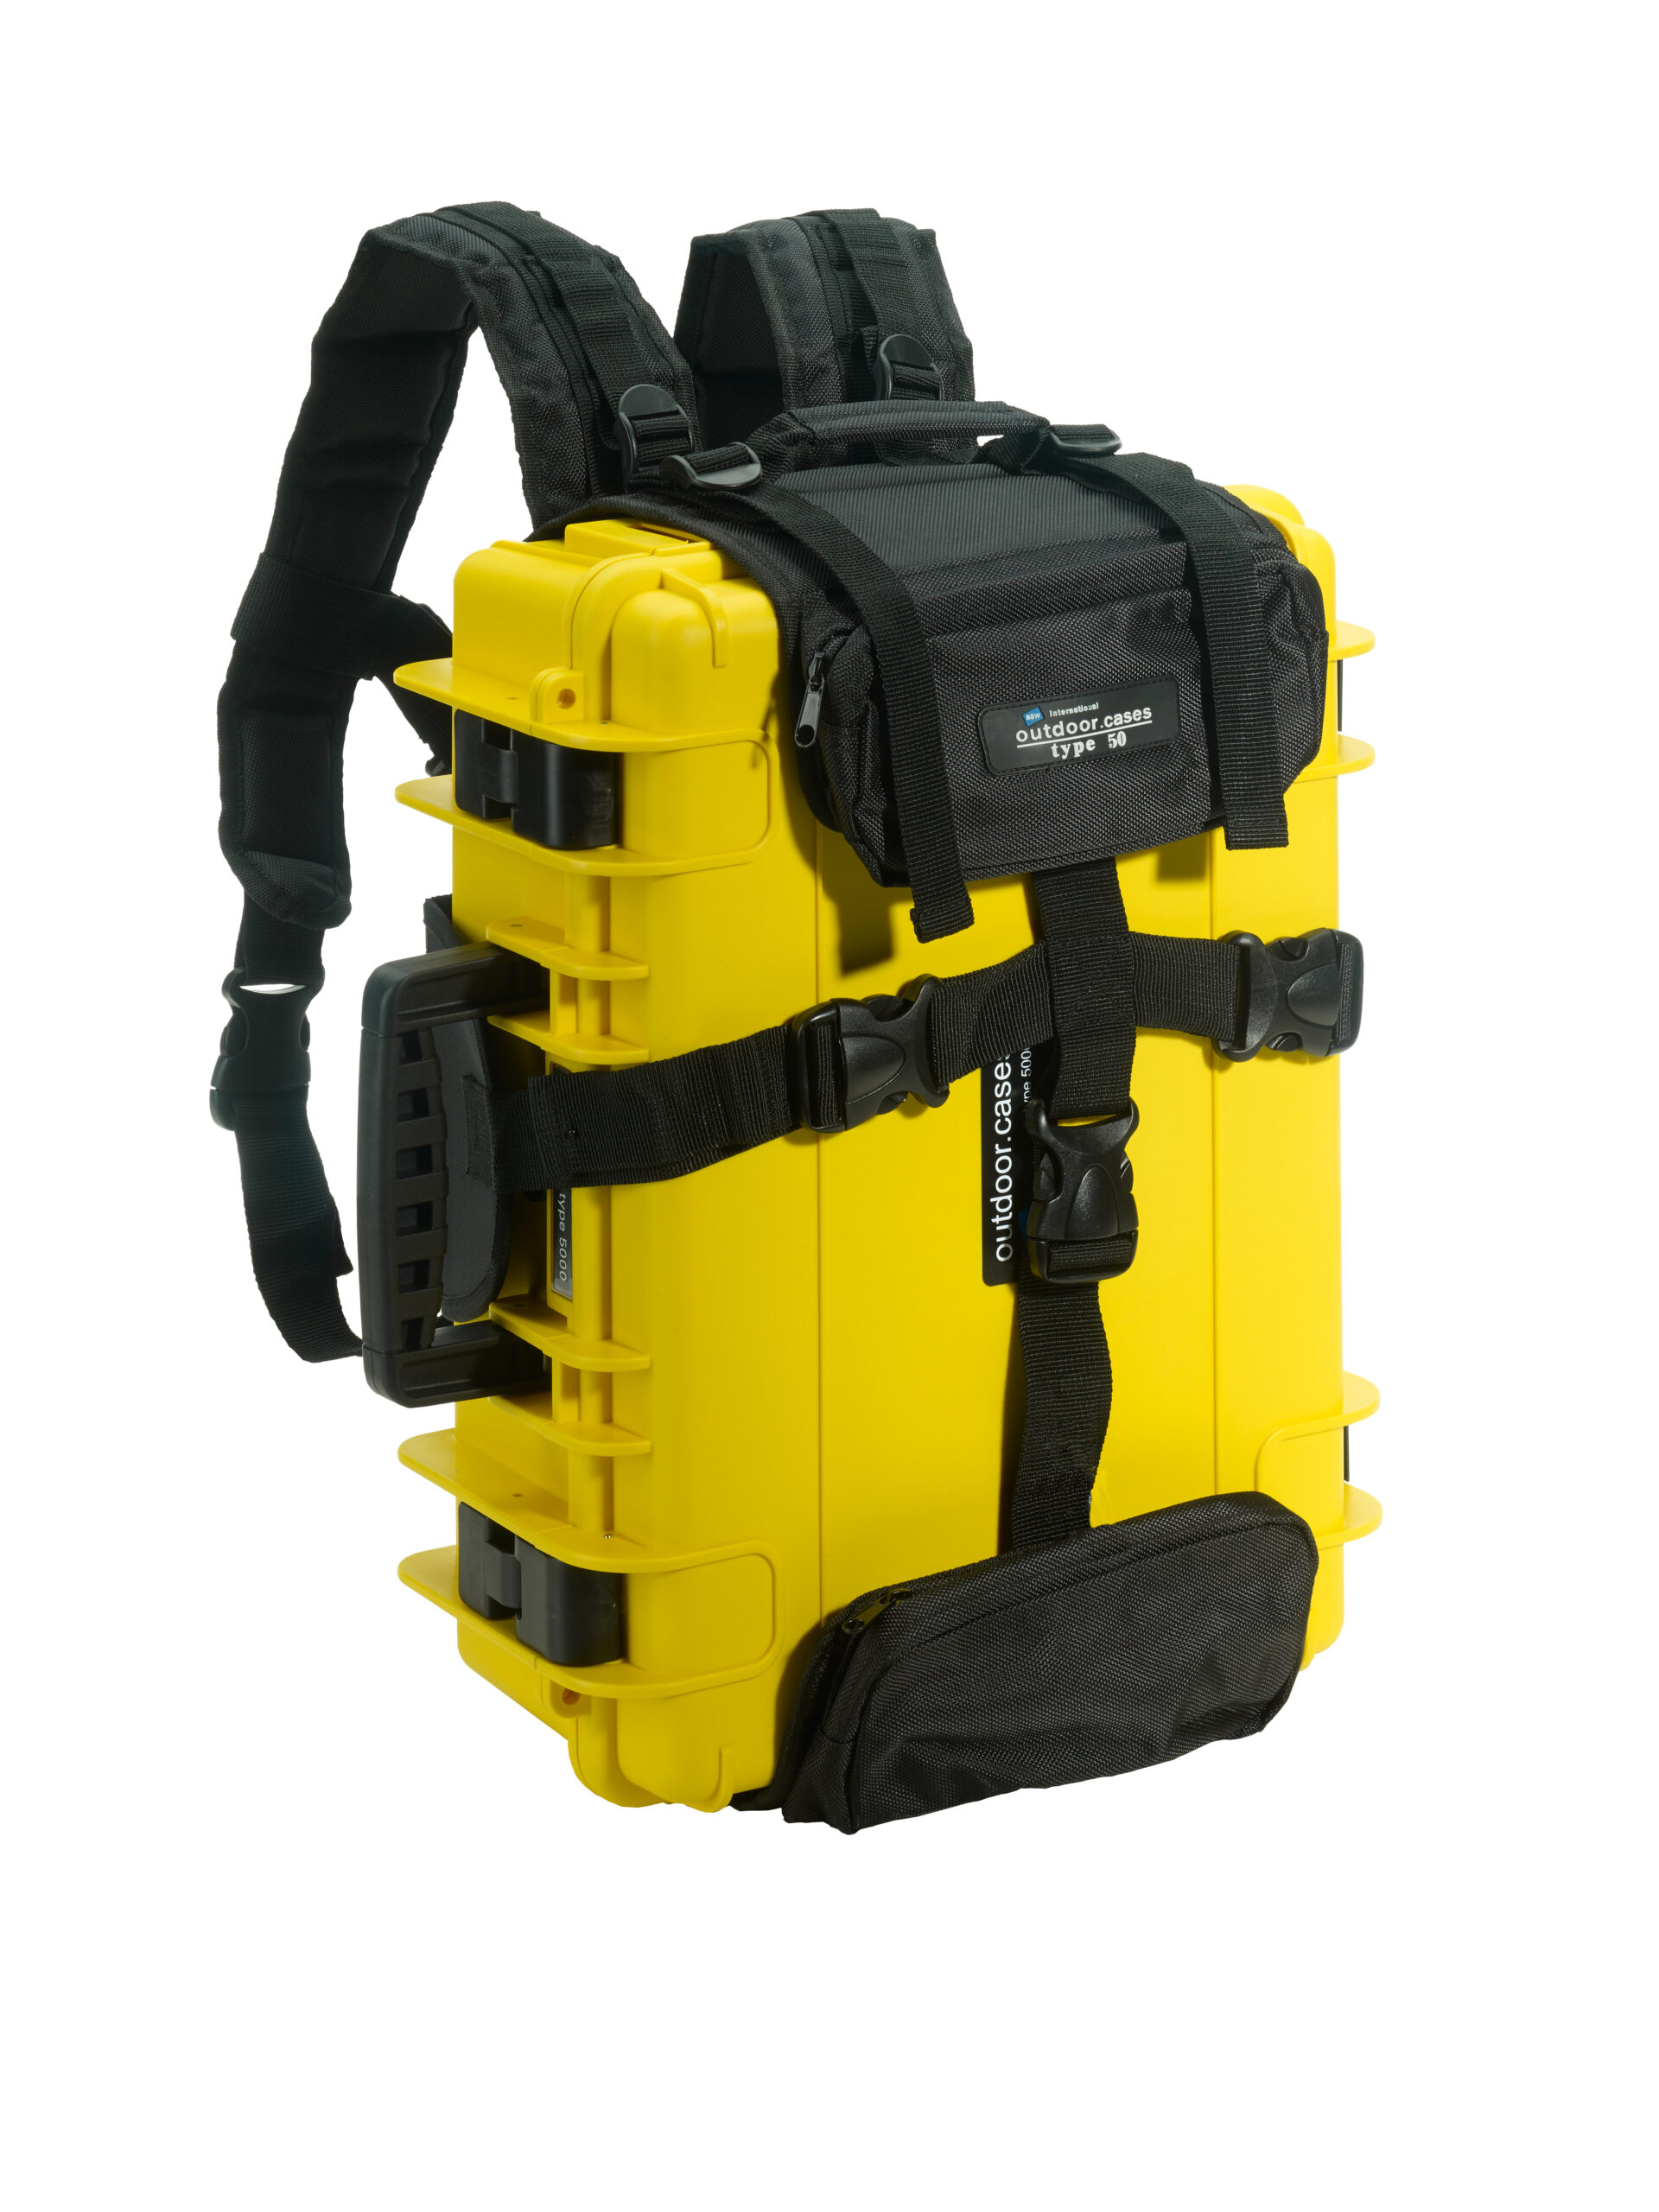 BW5000 Backpack System